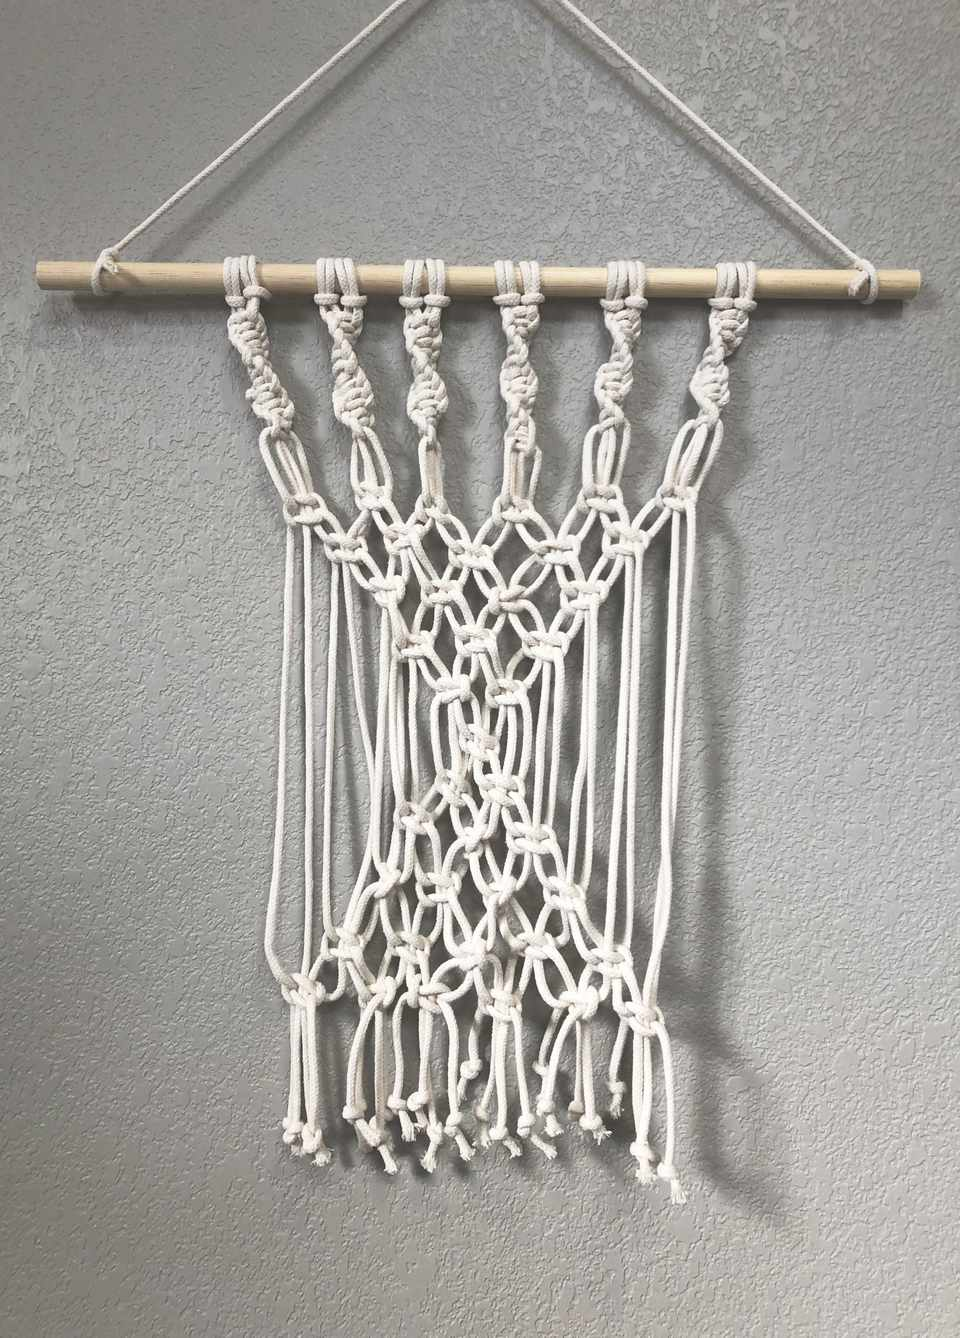 A macrame wall hanging